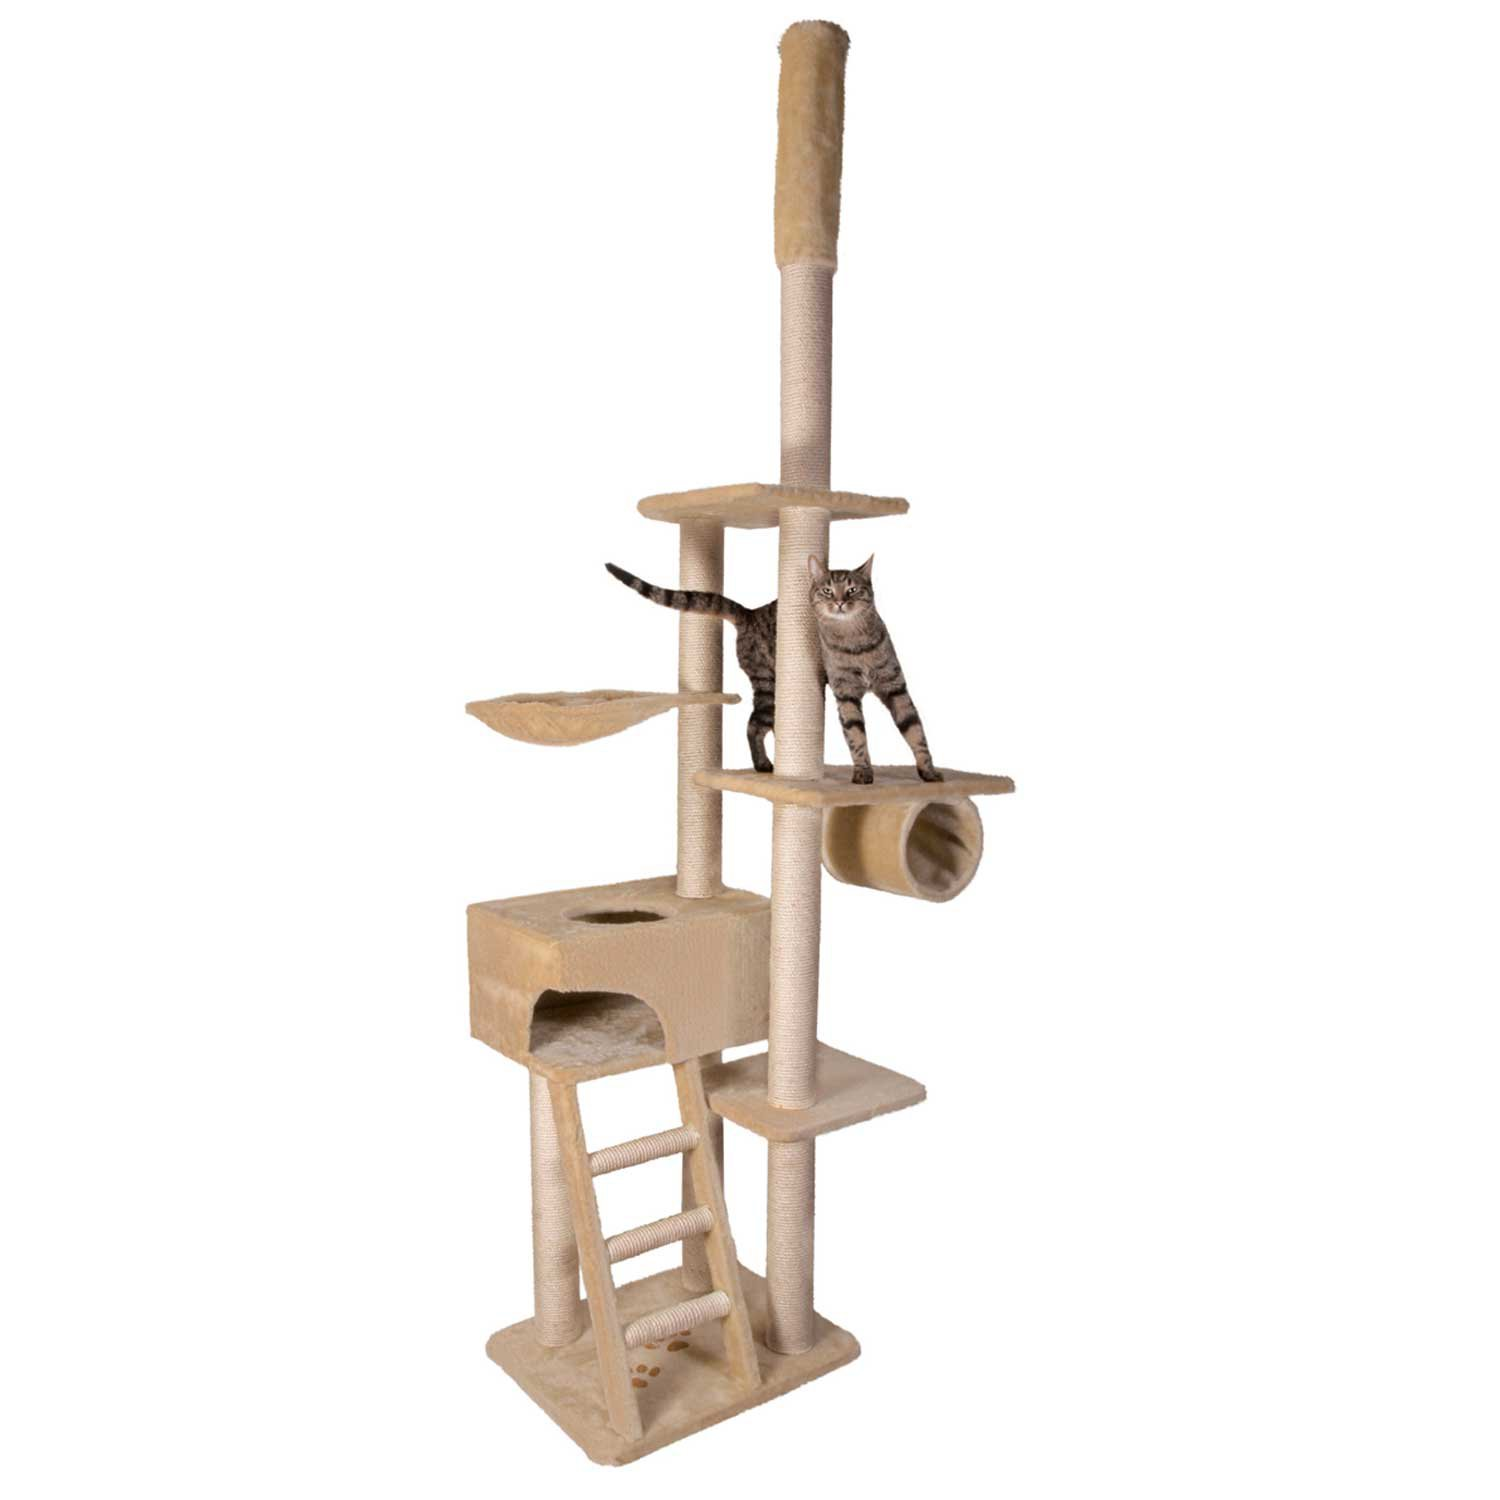 Trixie Zaragoza Cat Tree in Beige